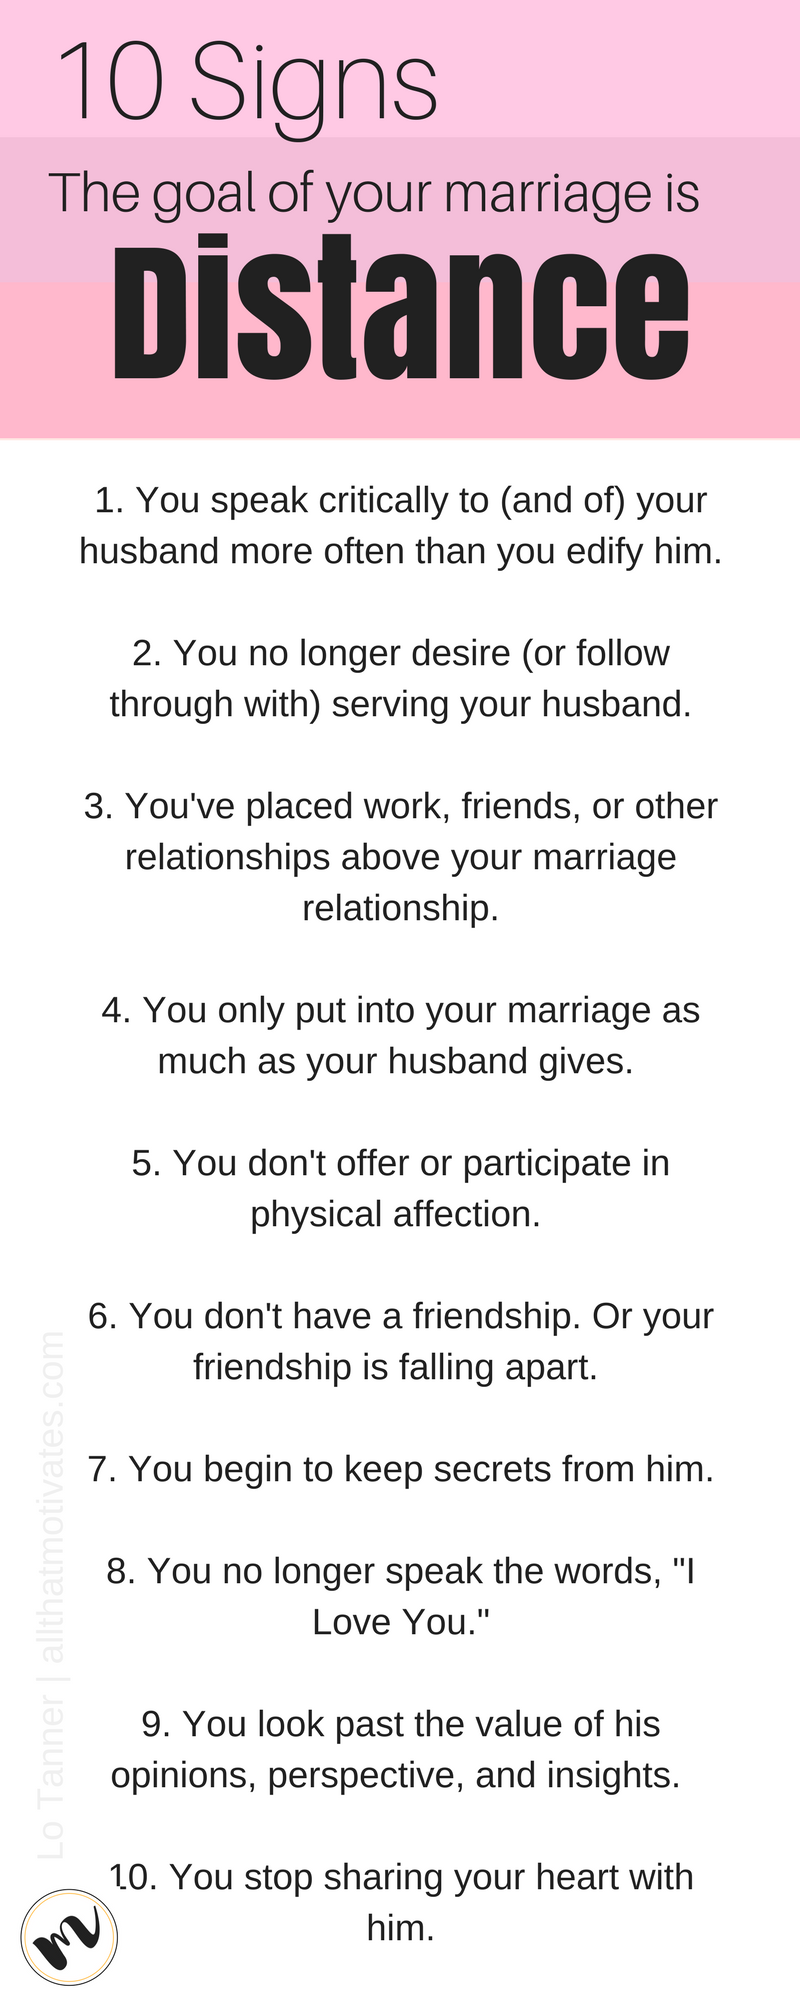 50+ Premarital Christian Counseling Questions to Ask Before You Get Married - HubPages